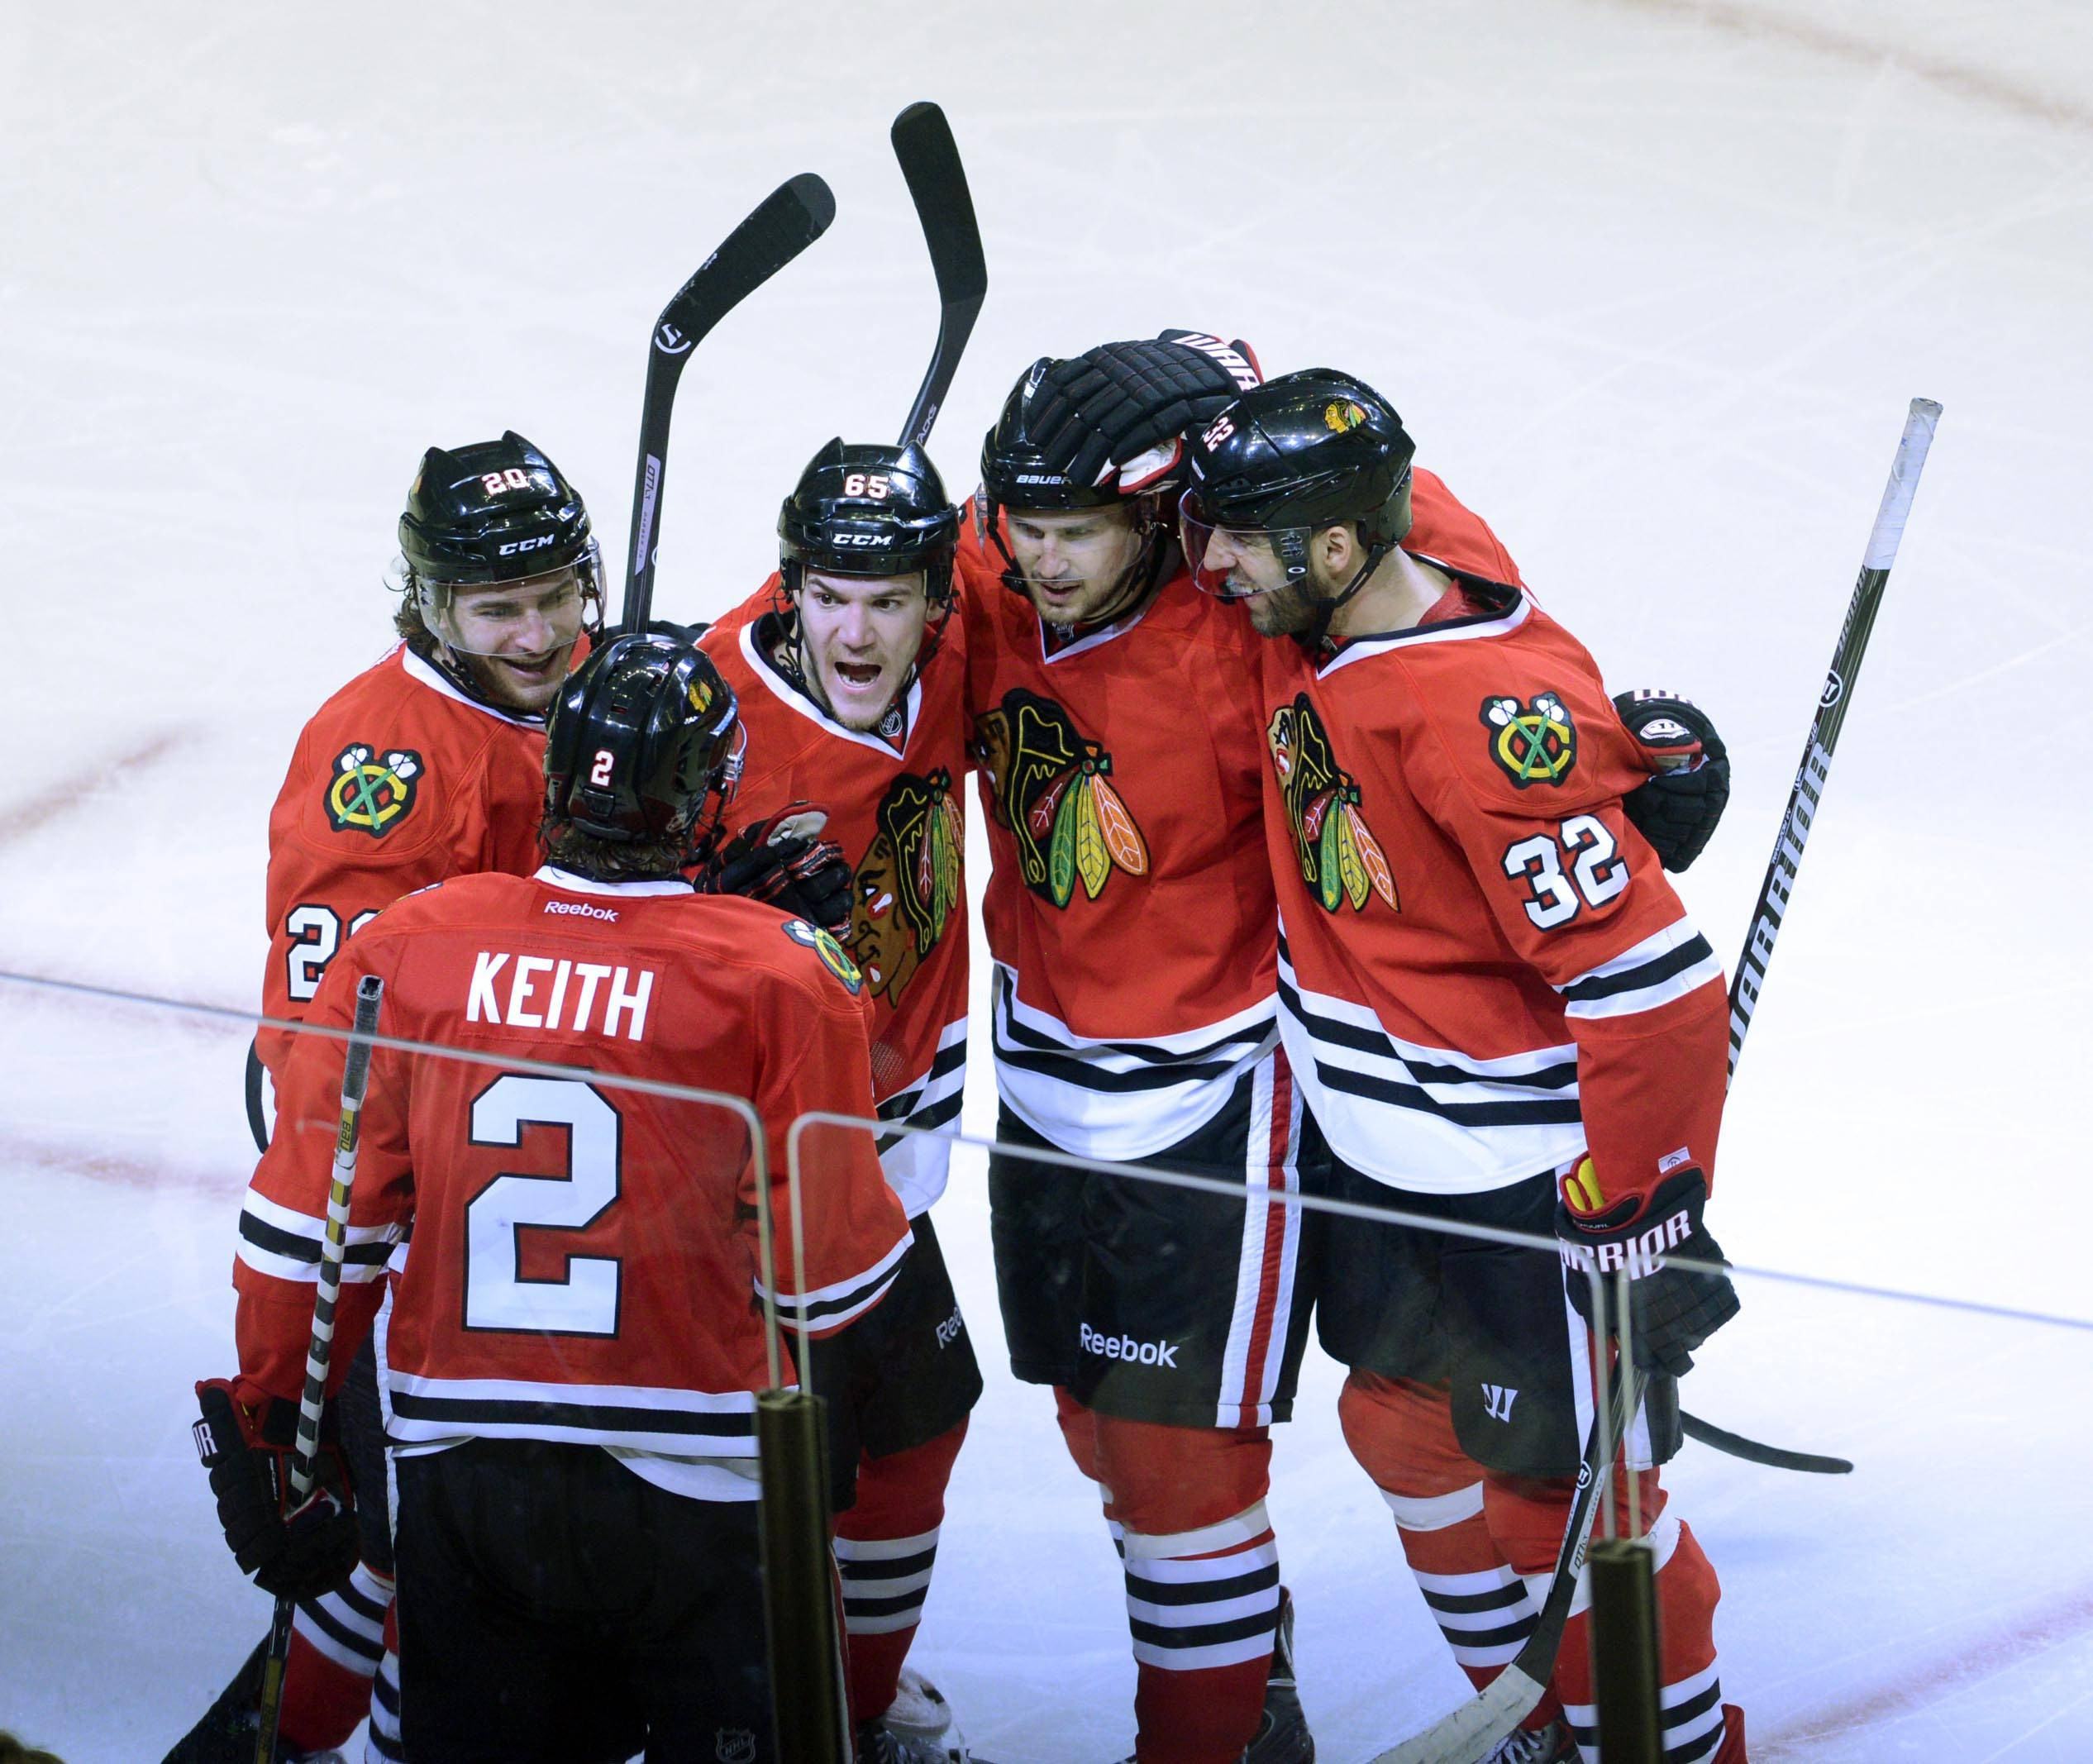 Chicago Blackhawks center Andrew Shaw is surrounded by teammates after his third-period goal against the St. Louis Blues Sunday in Game 6 of the NHL first round playoffs at the United Center in Chicago.